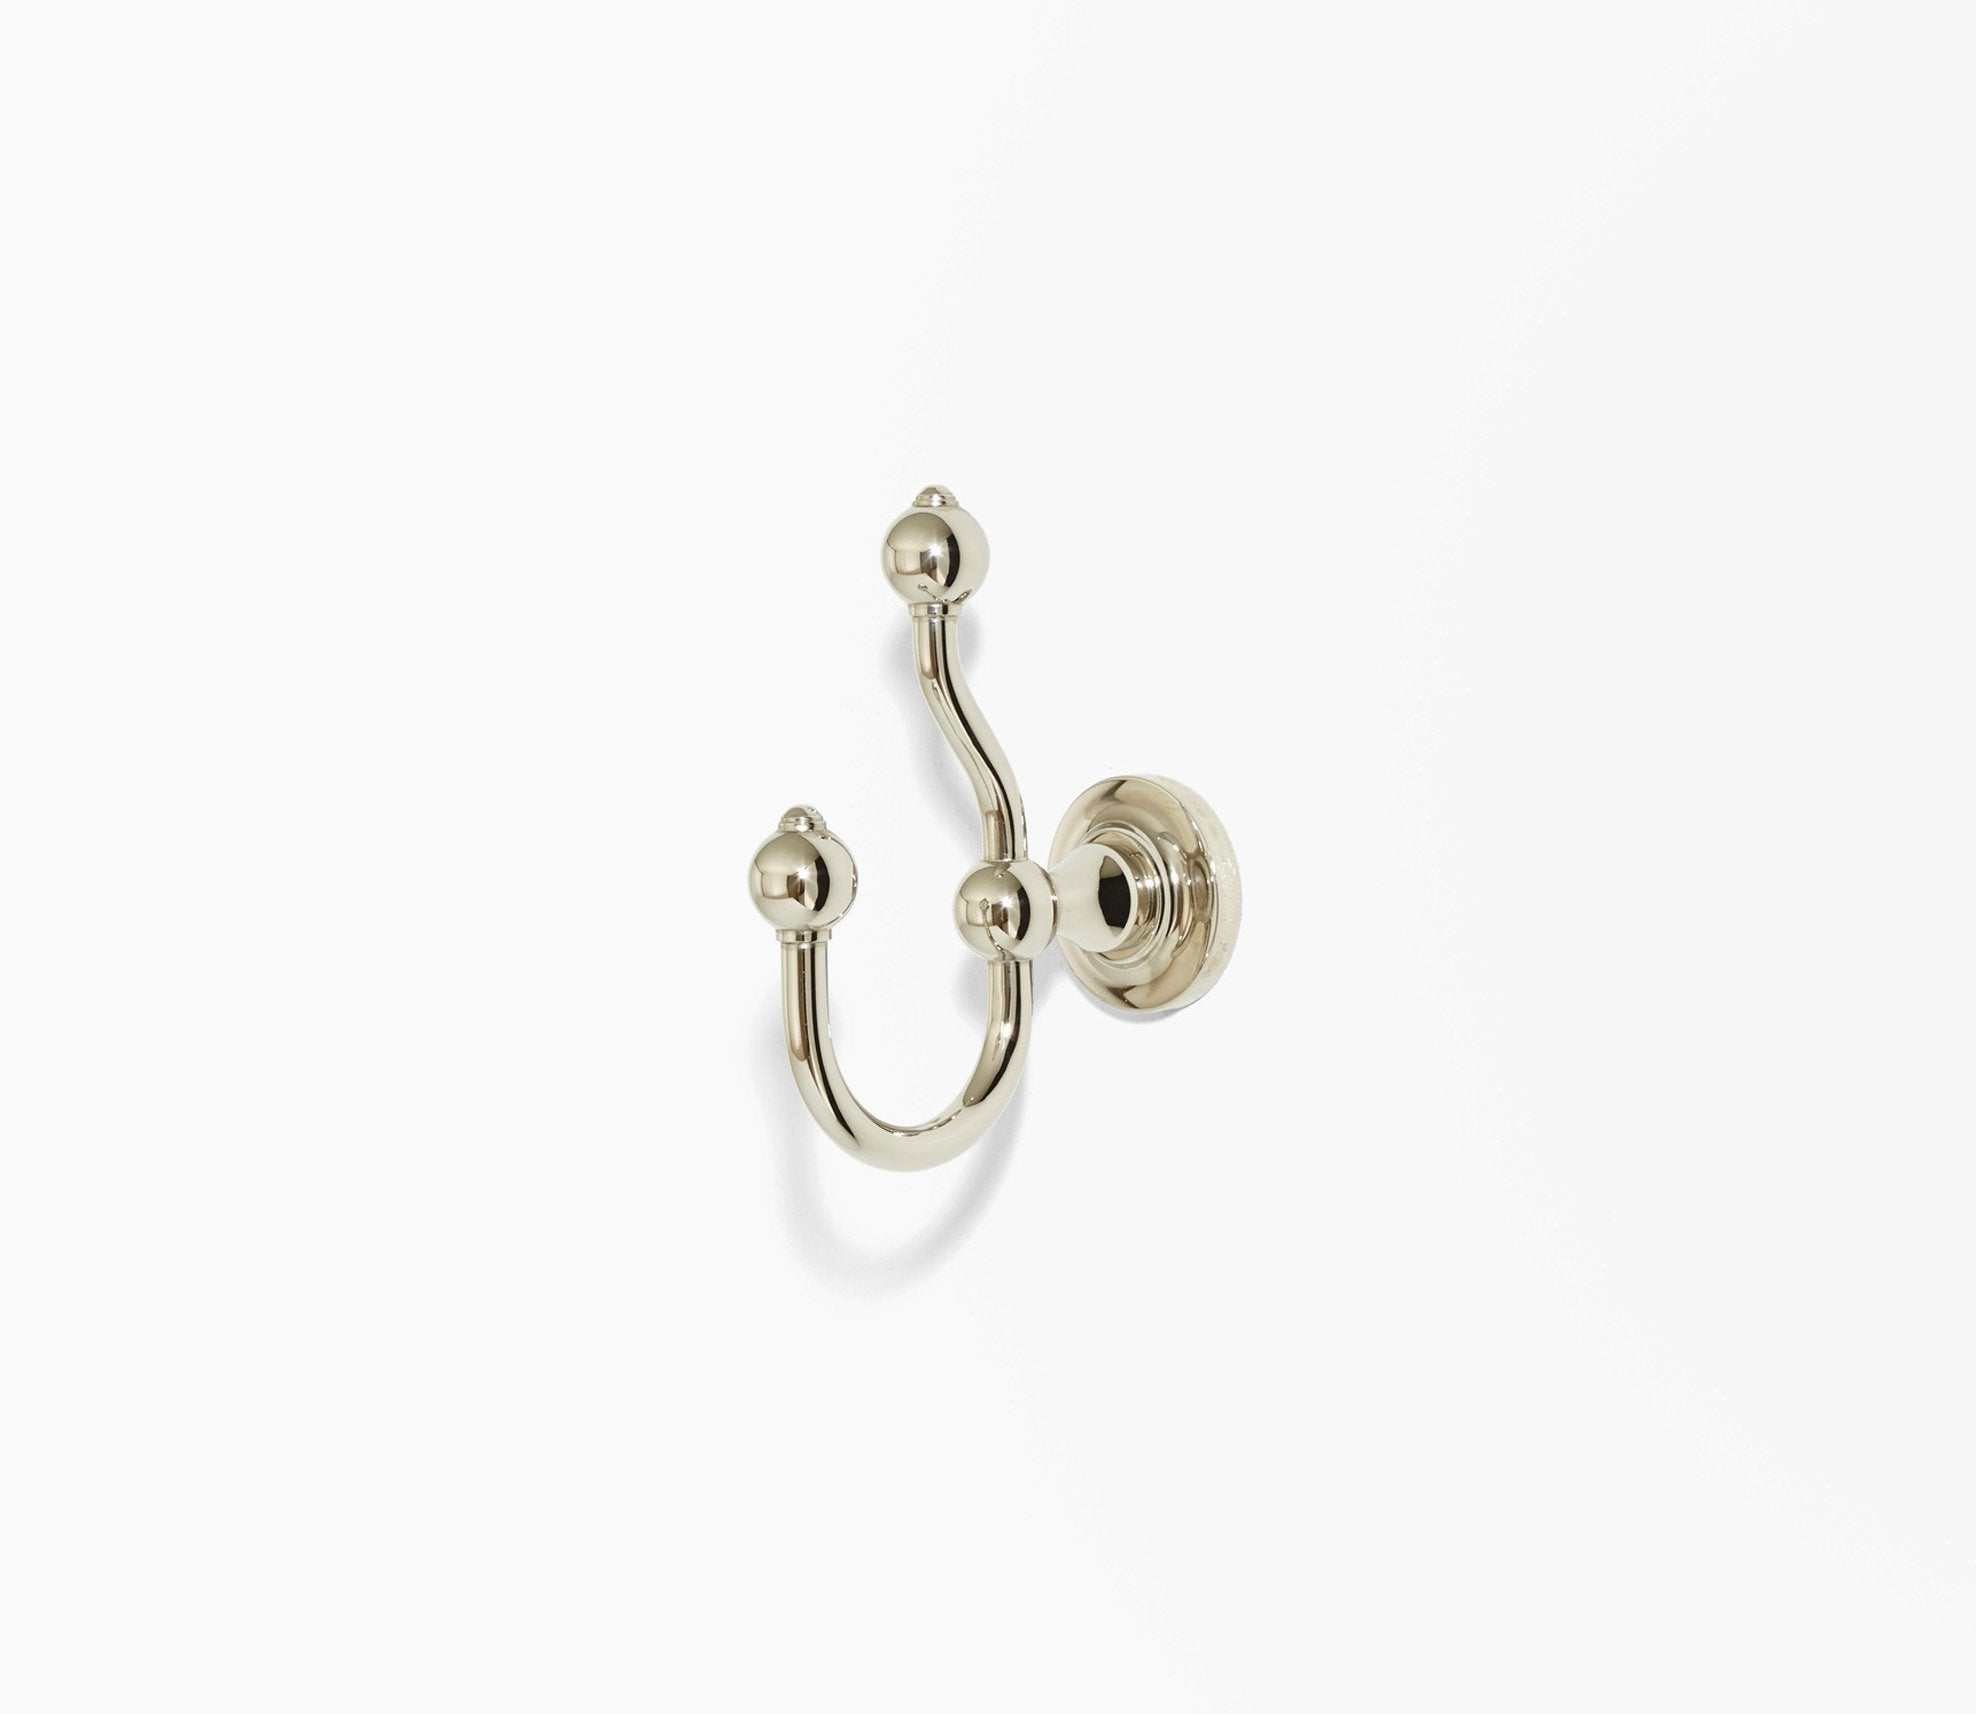 Hanbury Double Hook Product Image 1